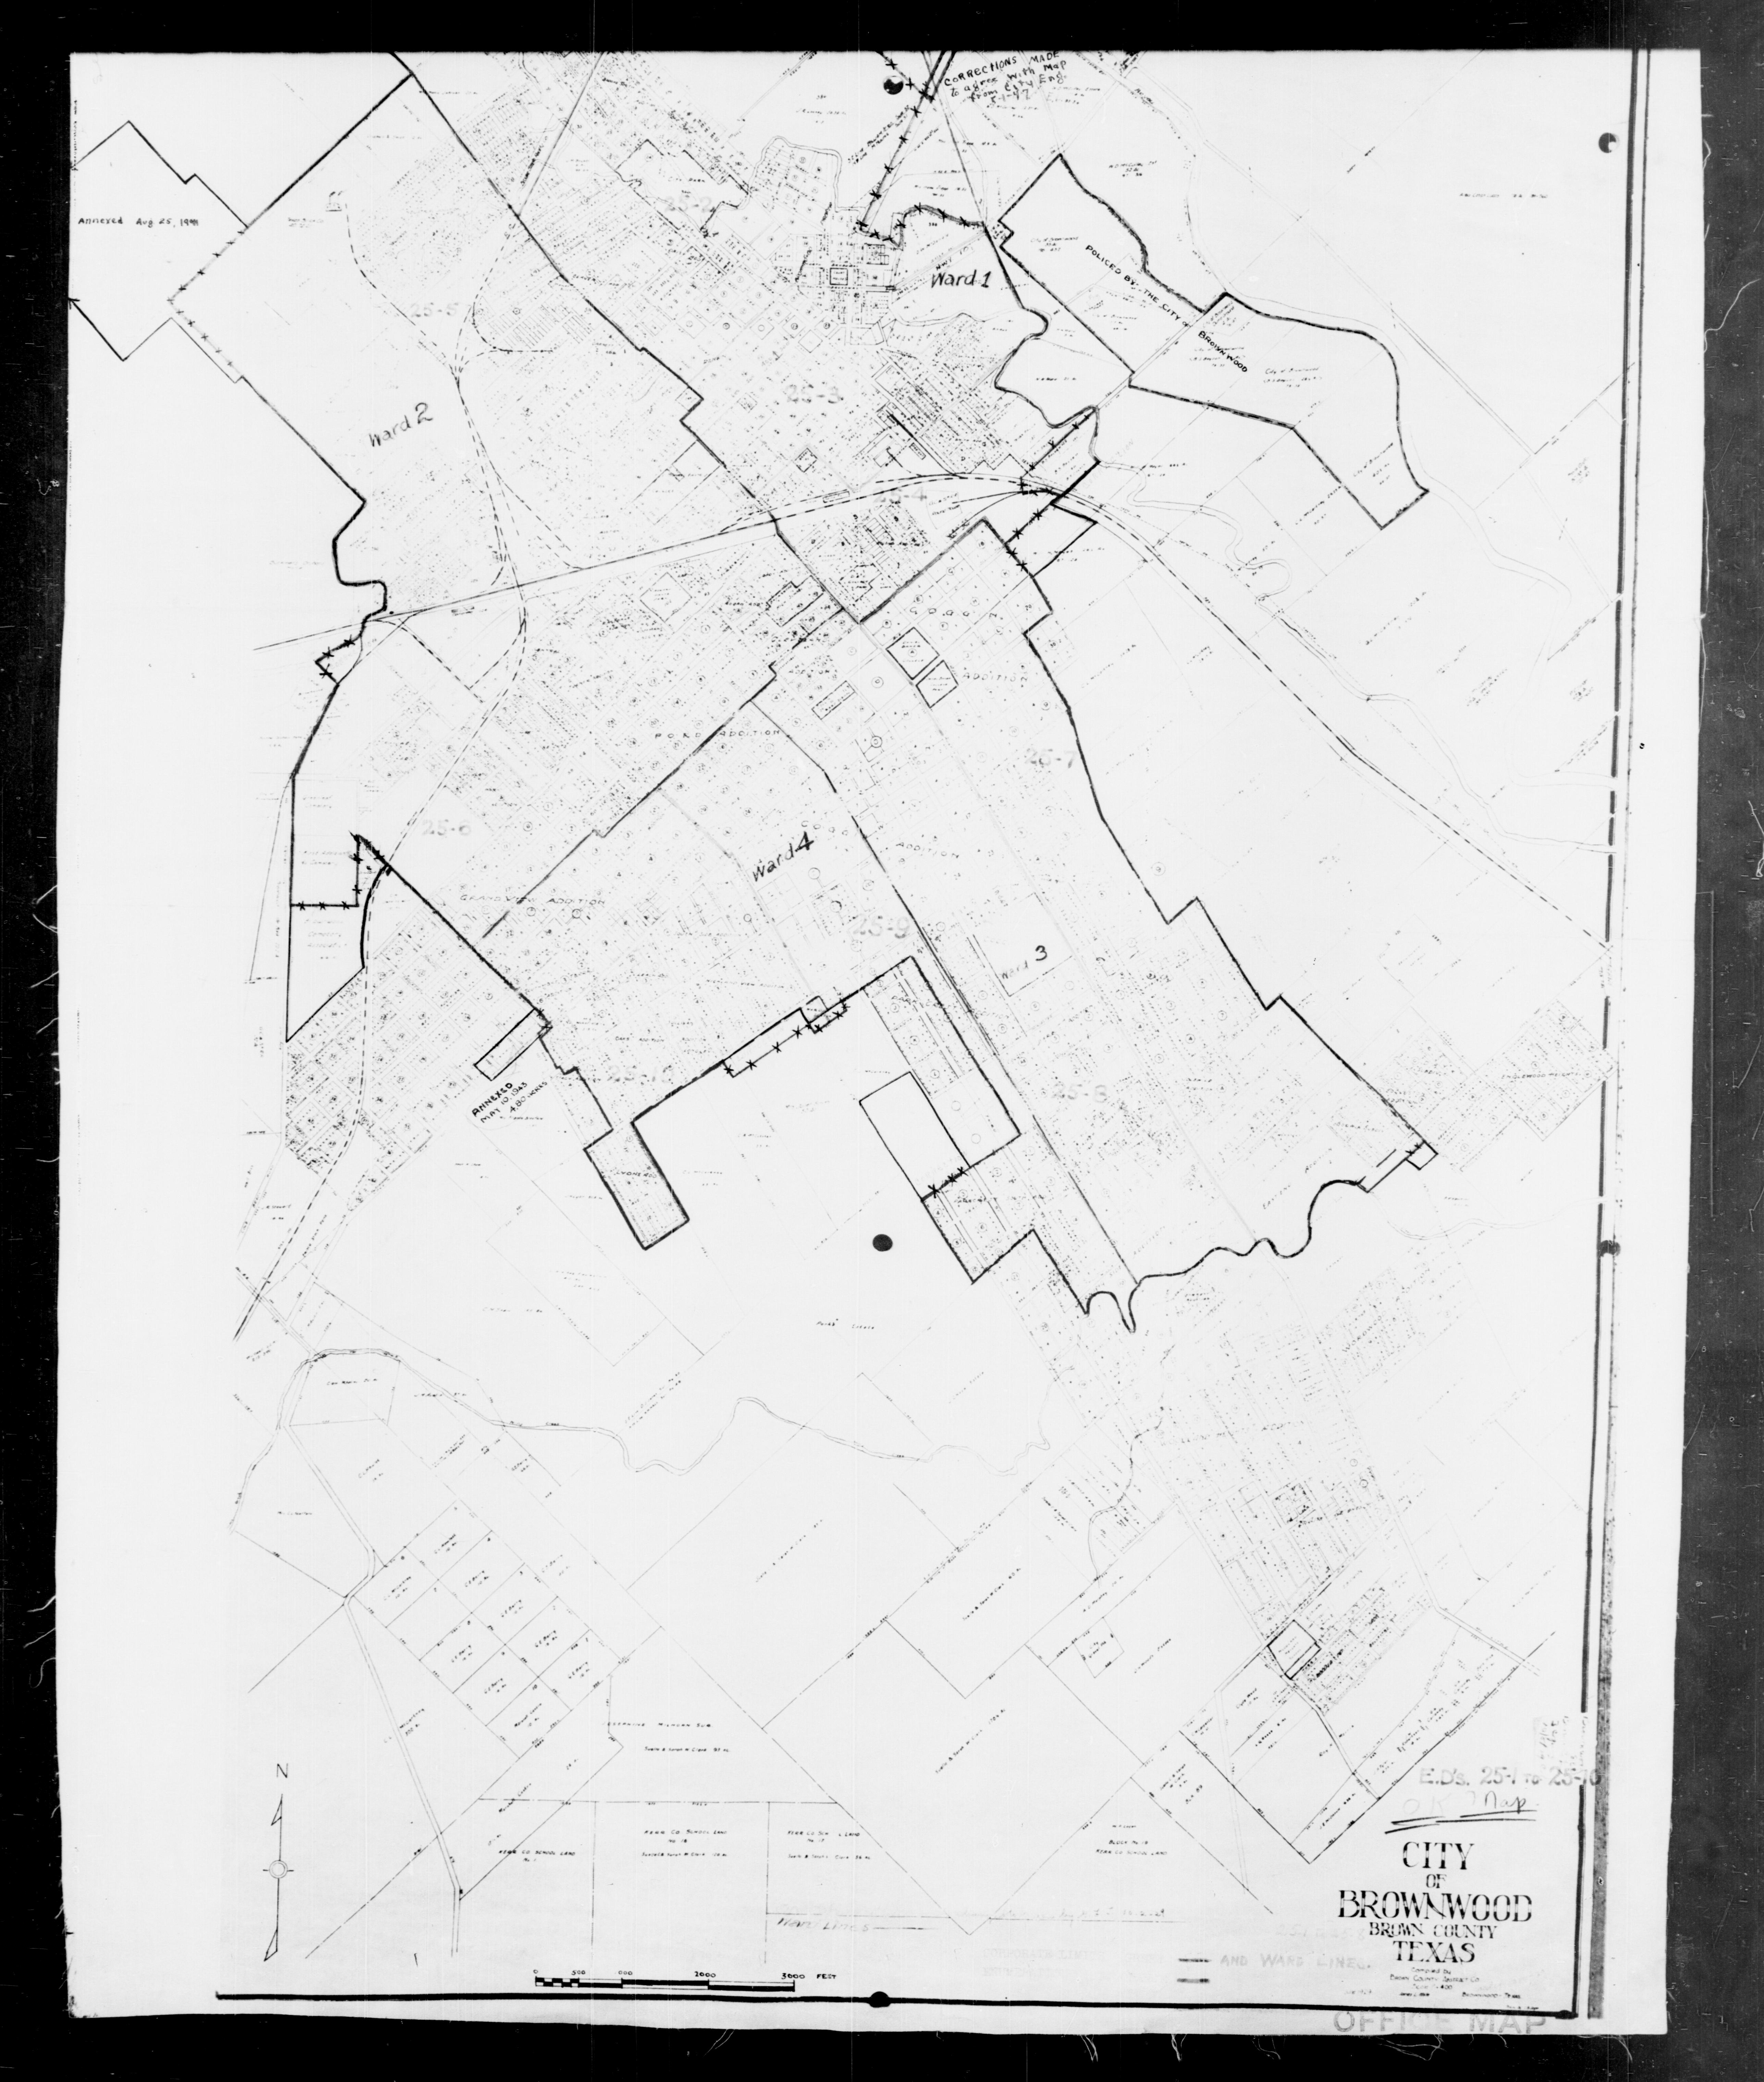 Coloriage Fleur Ms.1940 Census Texas Enumeration District Maps Perry Castaneda Map